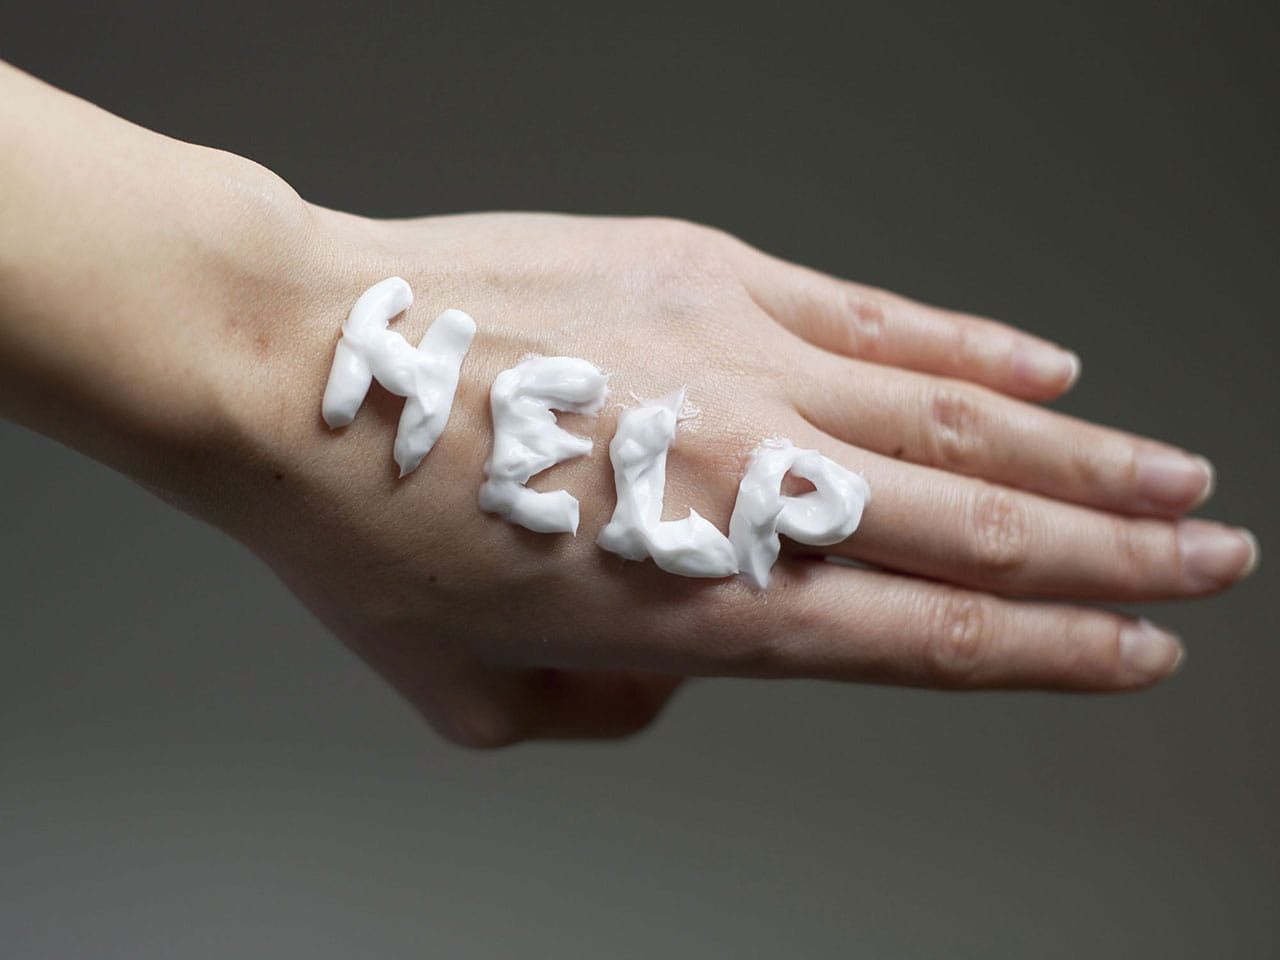 Ageing hand with help written on it in handcream